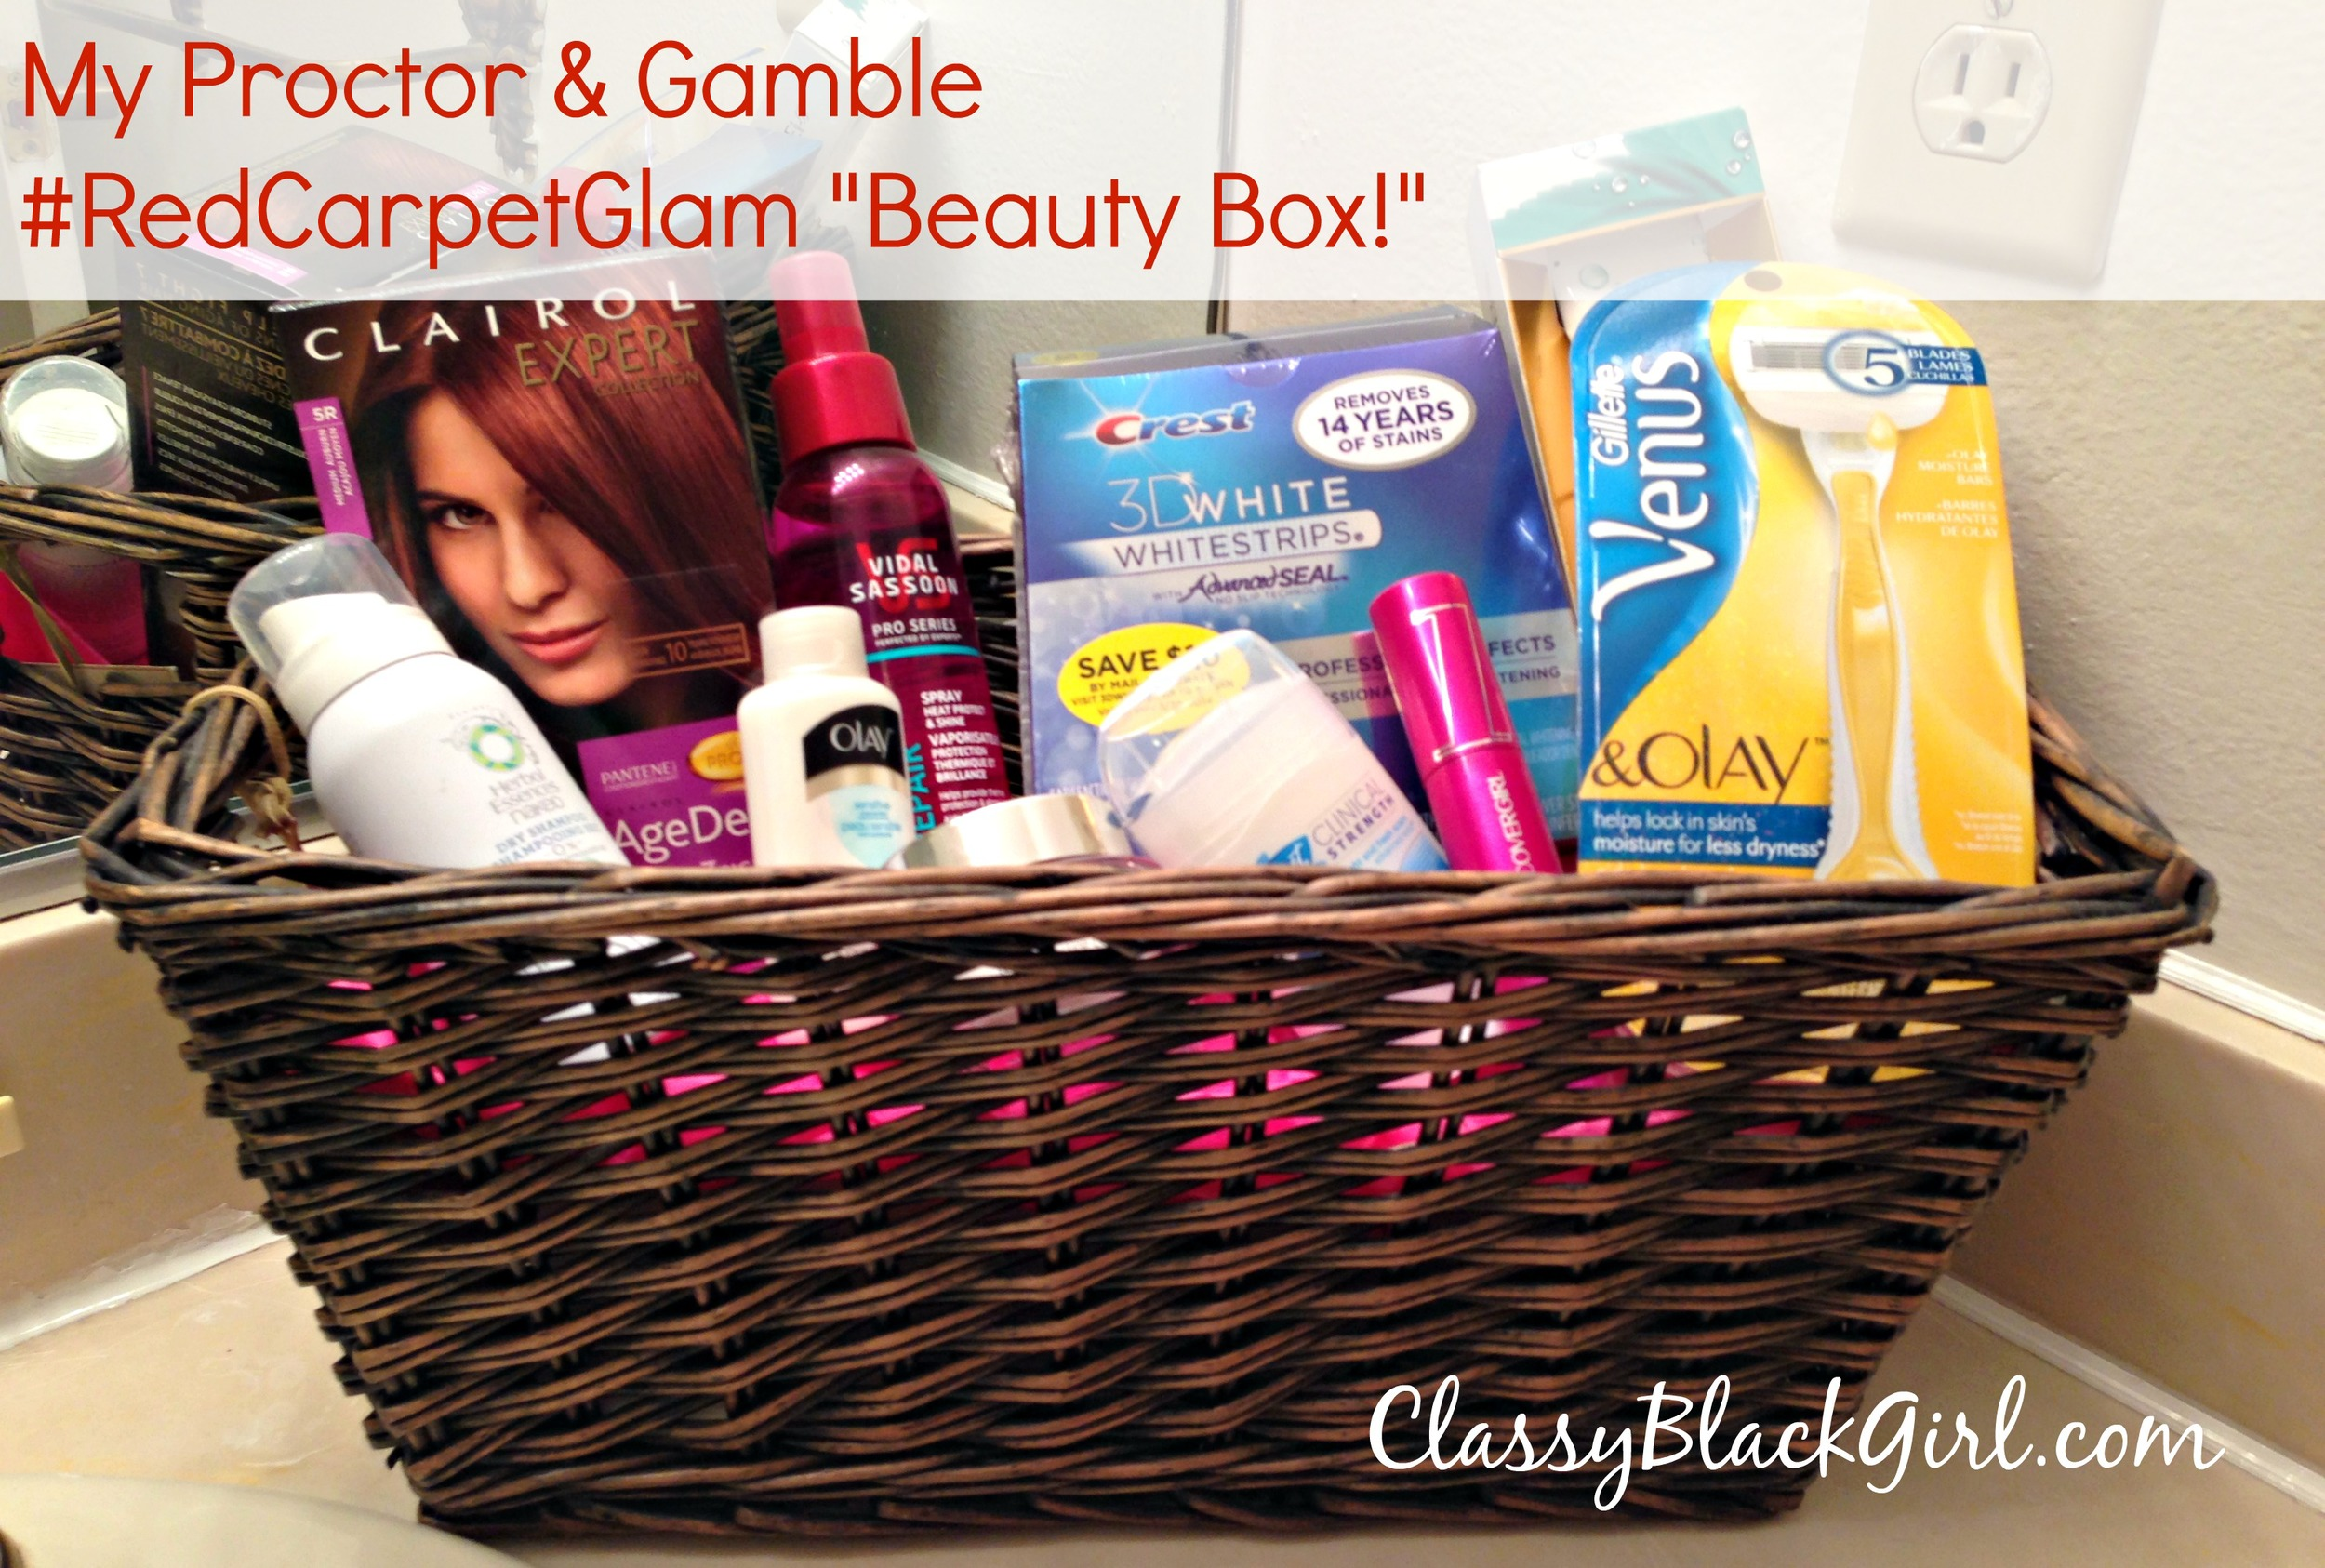 #RedCarpetGlam Beauty Box Proctor and Gamble ClassyBlackGirl #ad #sponsored